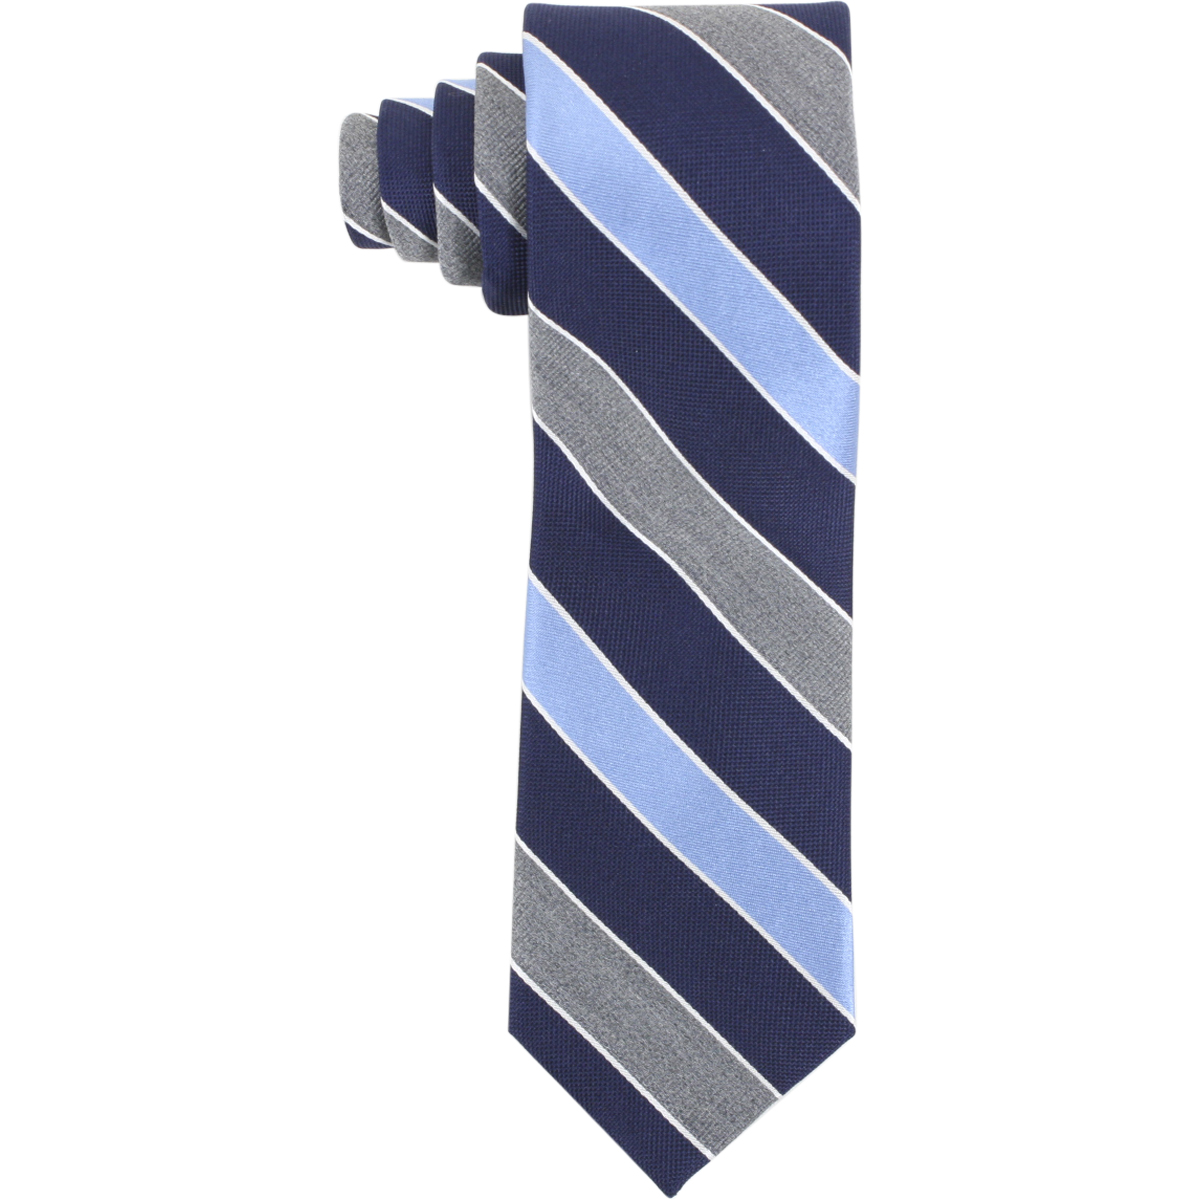 Image of Tommy Hilfiger Men's Contrasting Heather Stripe Print Tie - Blue - 2.75 Inch